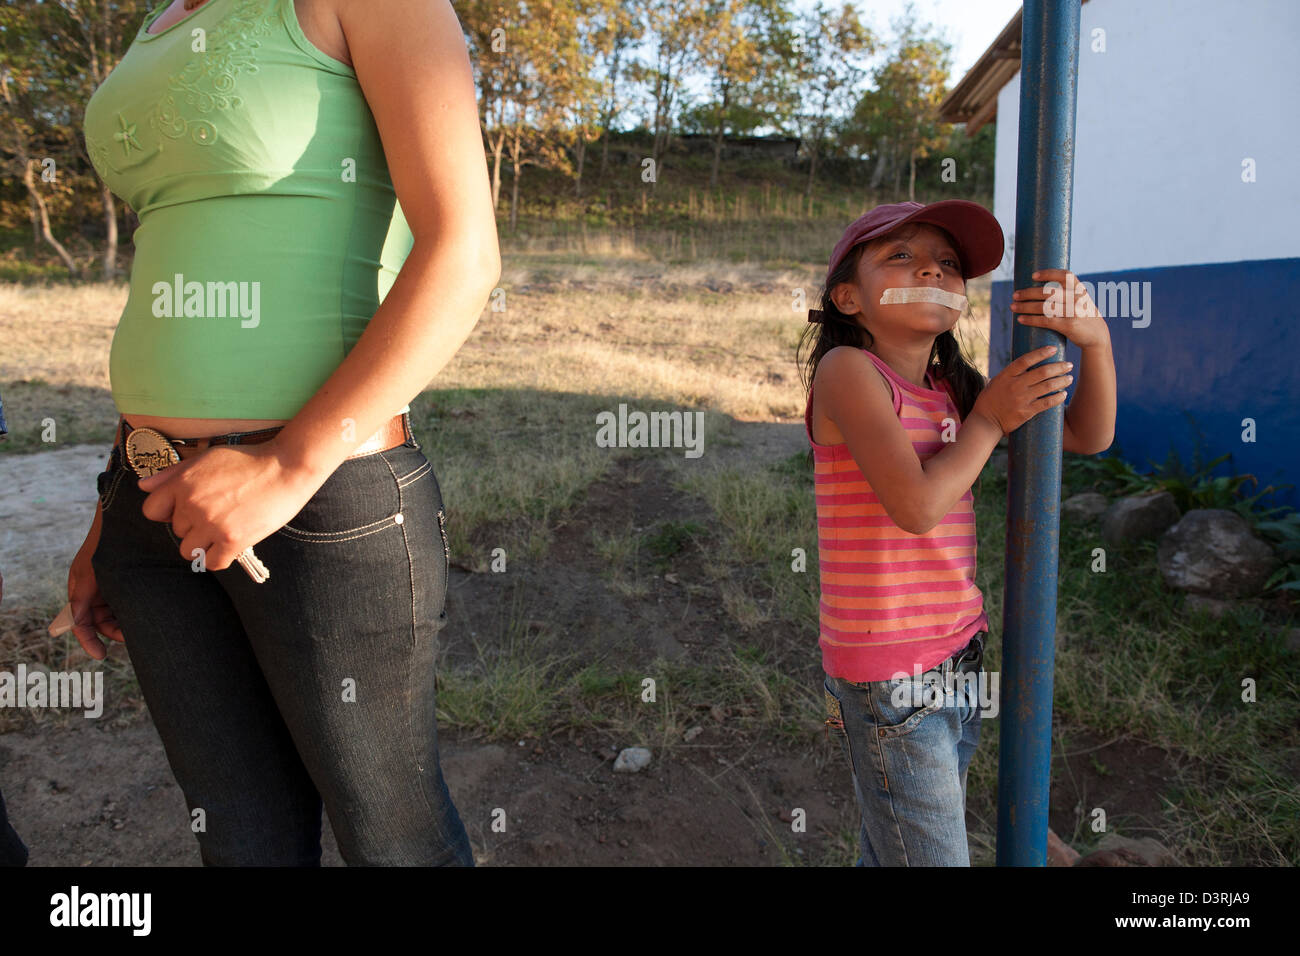 A young girl has her mouth taped and gagged for fun outside rural school in  Miraflores in coffee growing Nicaraguan Highlands